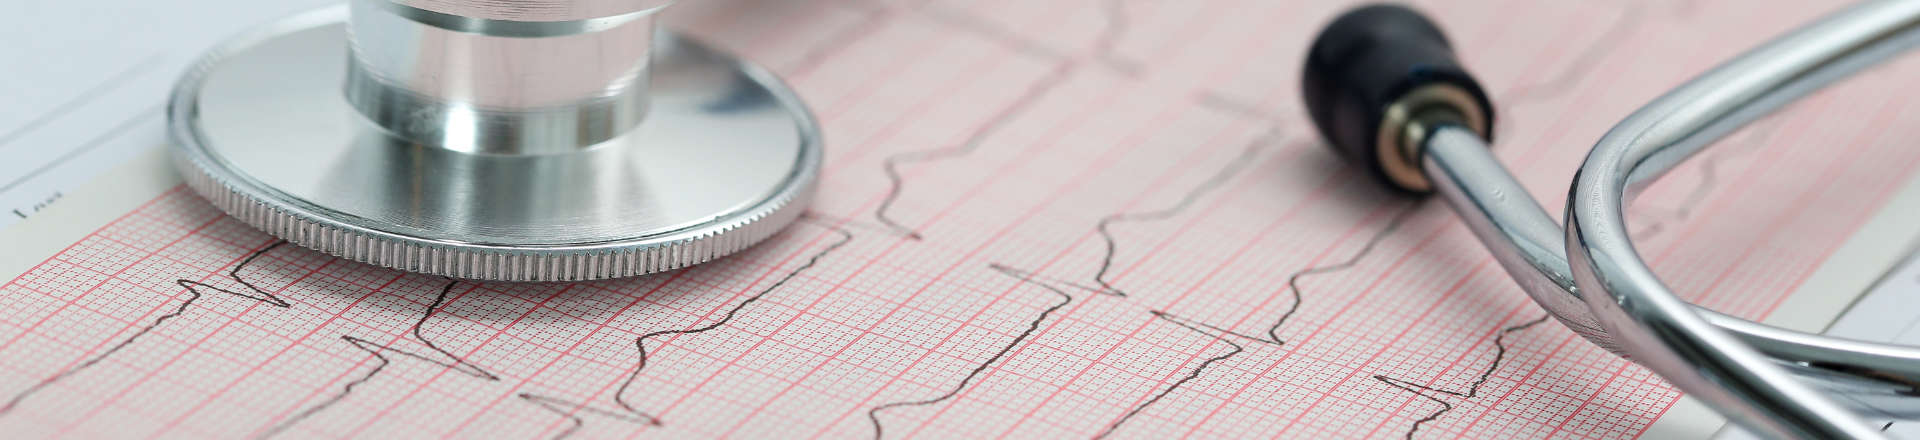 A Stethoscope and An Electrocardiogram Paper